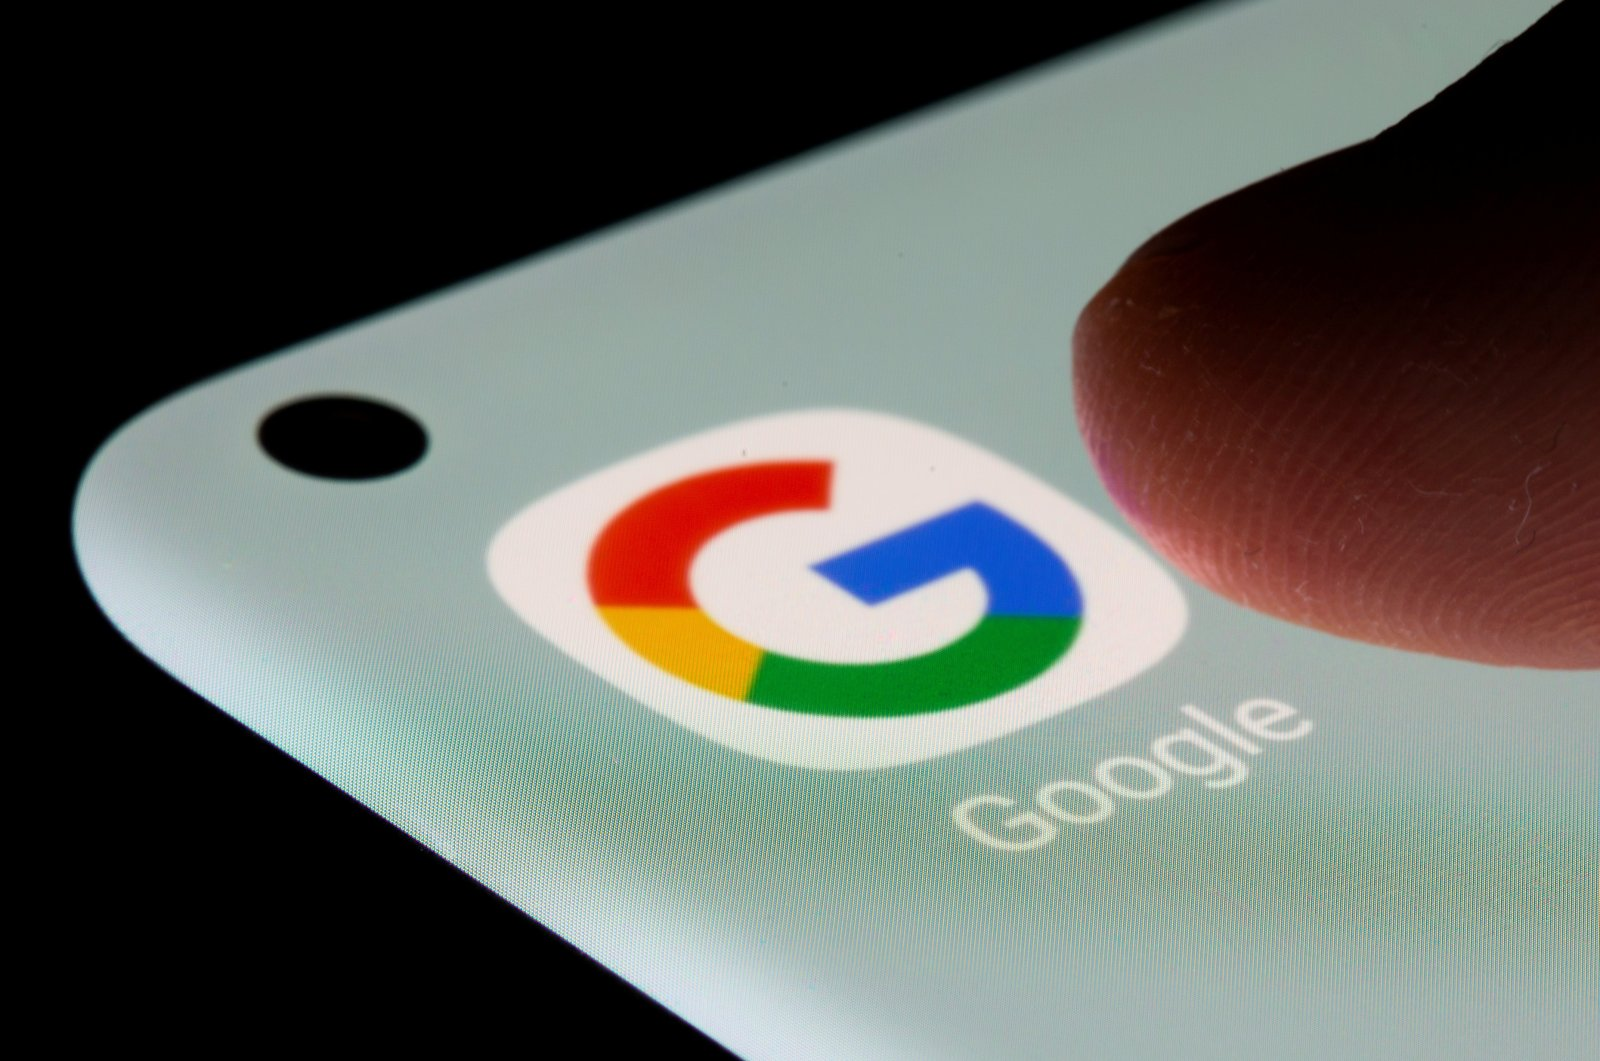 The Google logo is seen on a smartphone in this illustration taken July 13, 2021. (Reuters File Photo)